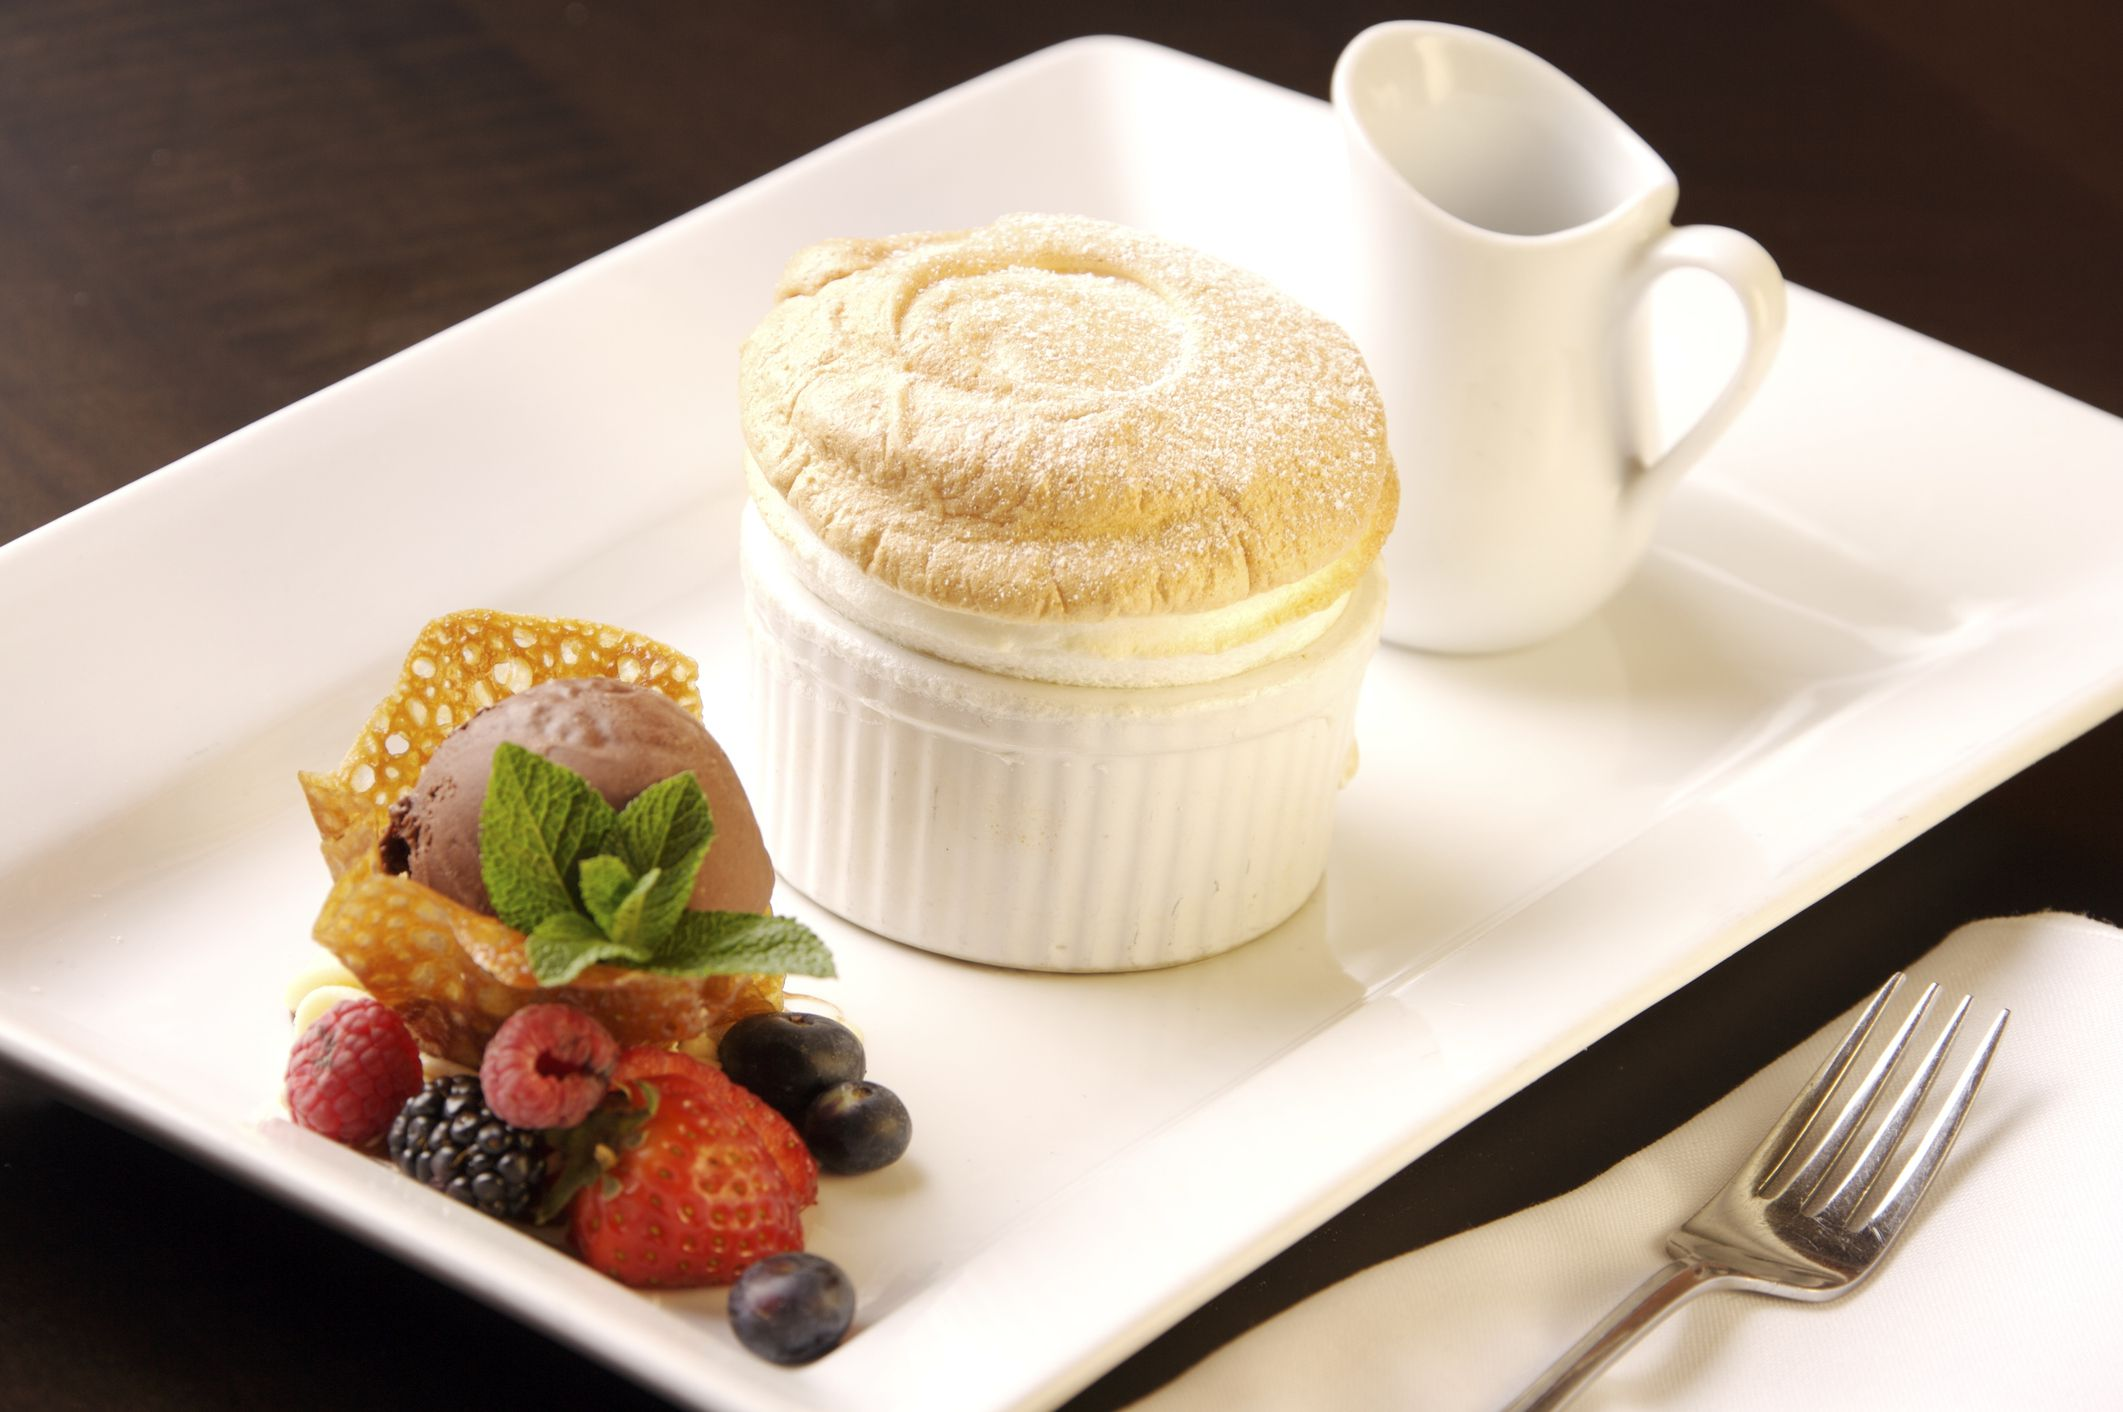 White Chocolate Soufflé the French Way